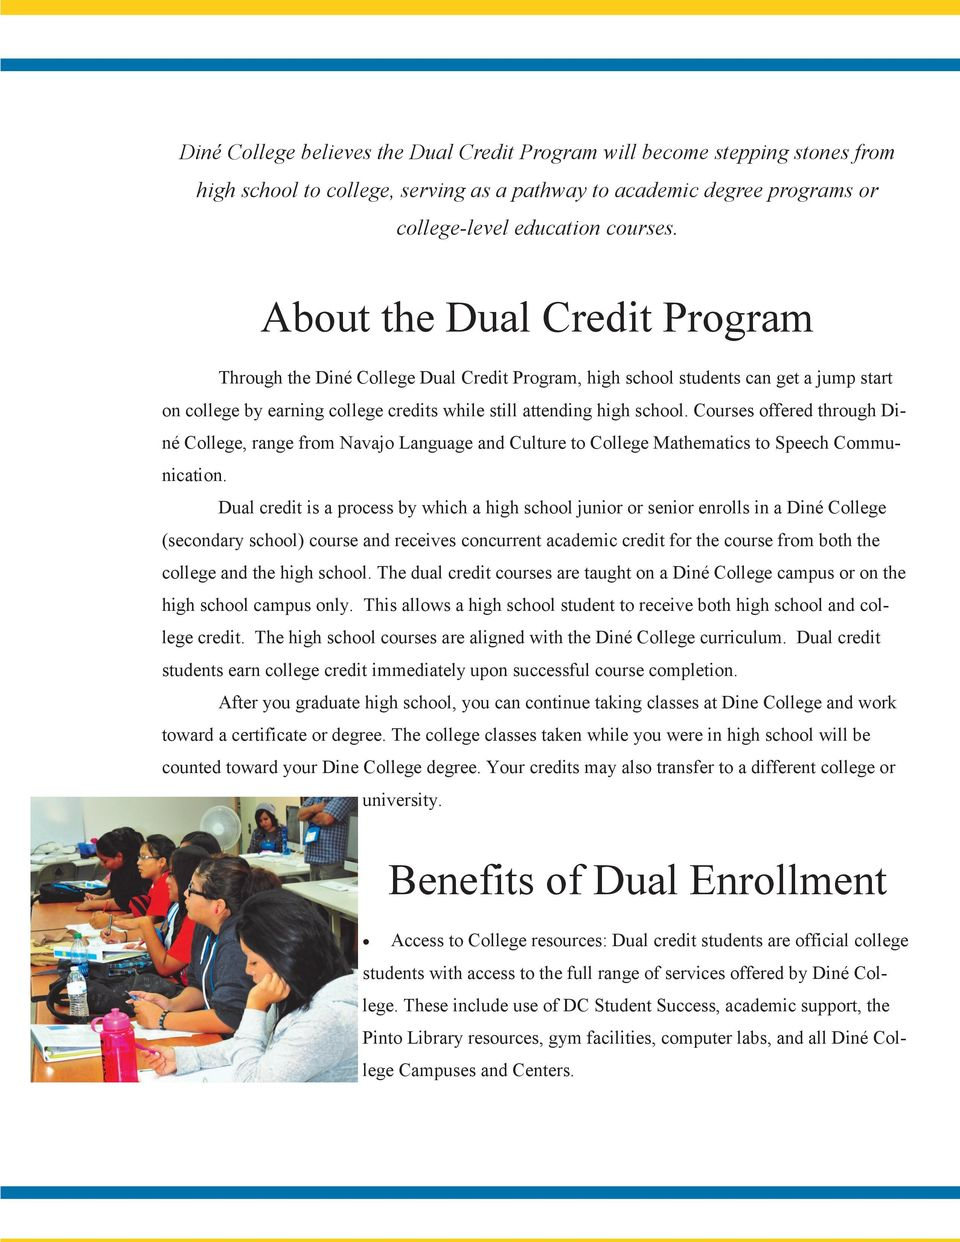 Courses offered through Diné College, range from Navajo Language and Culture to College Mathematics to Speech Communication.